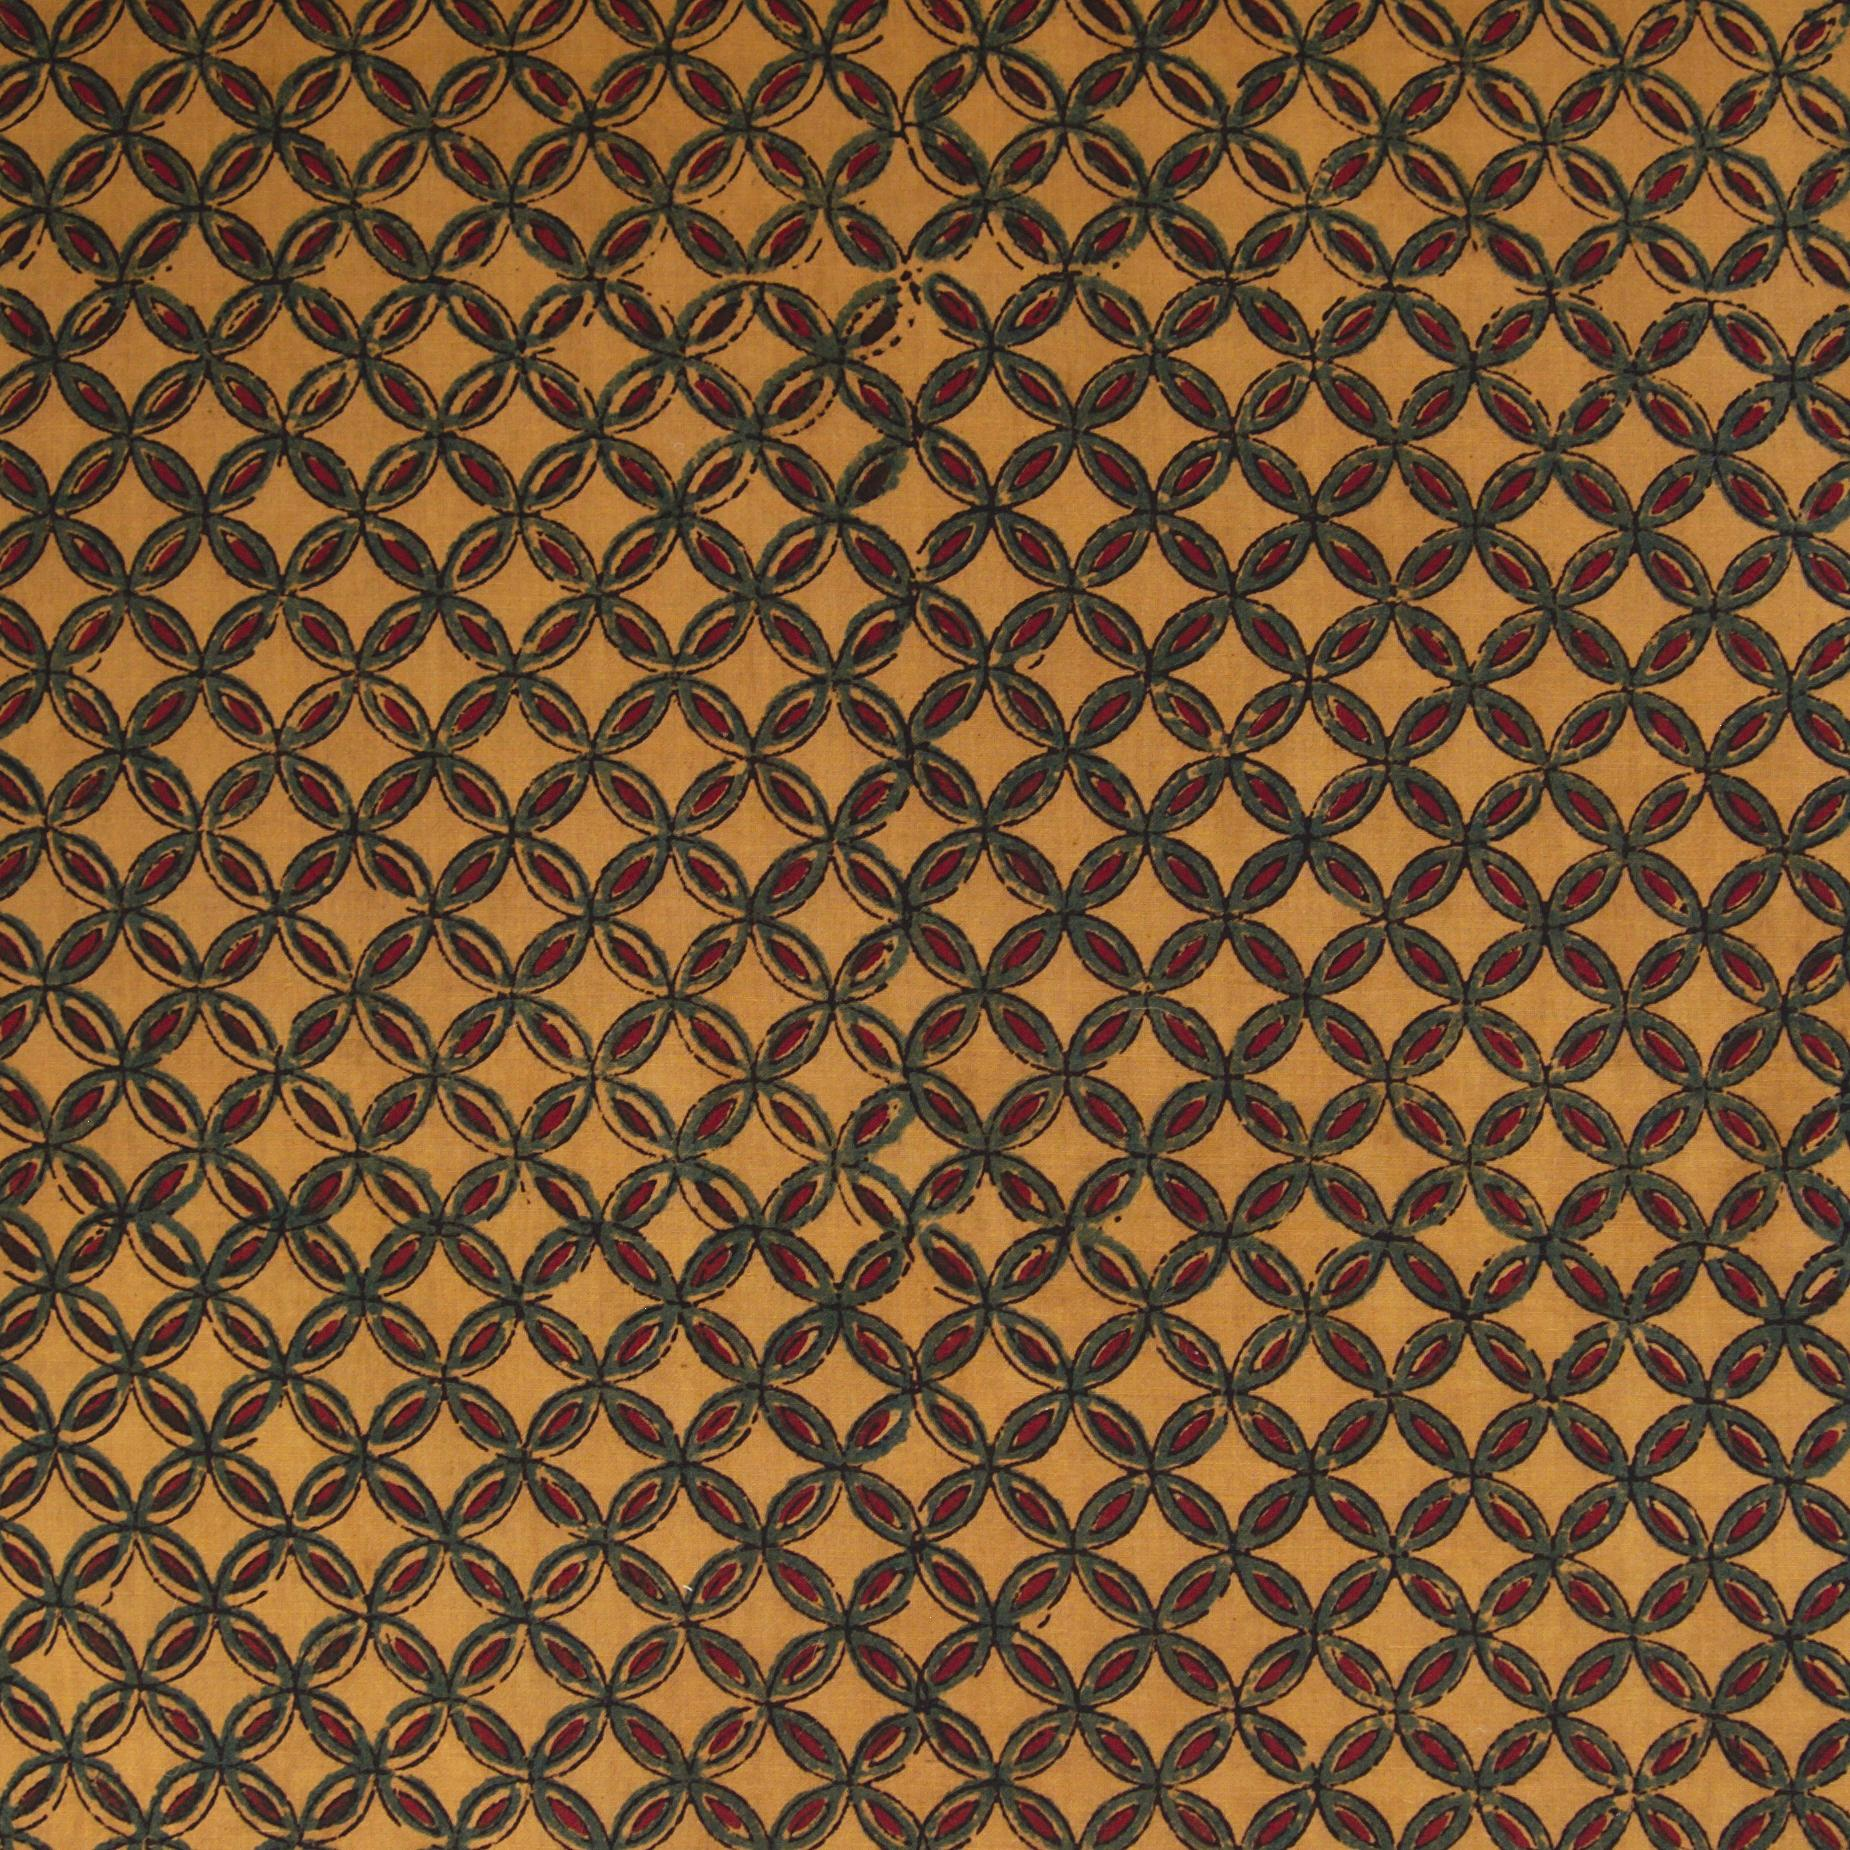 Block Printed Fabric, 100% Cotton, Ajrak Design: Yellow Base, Green Overlapping Circles, Red. Close Up